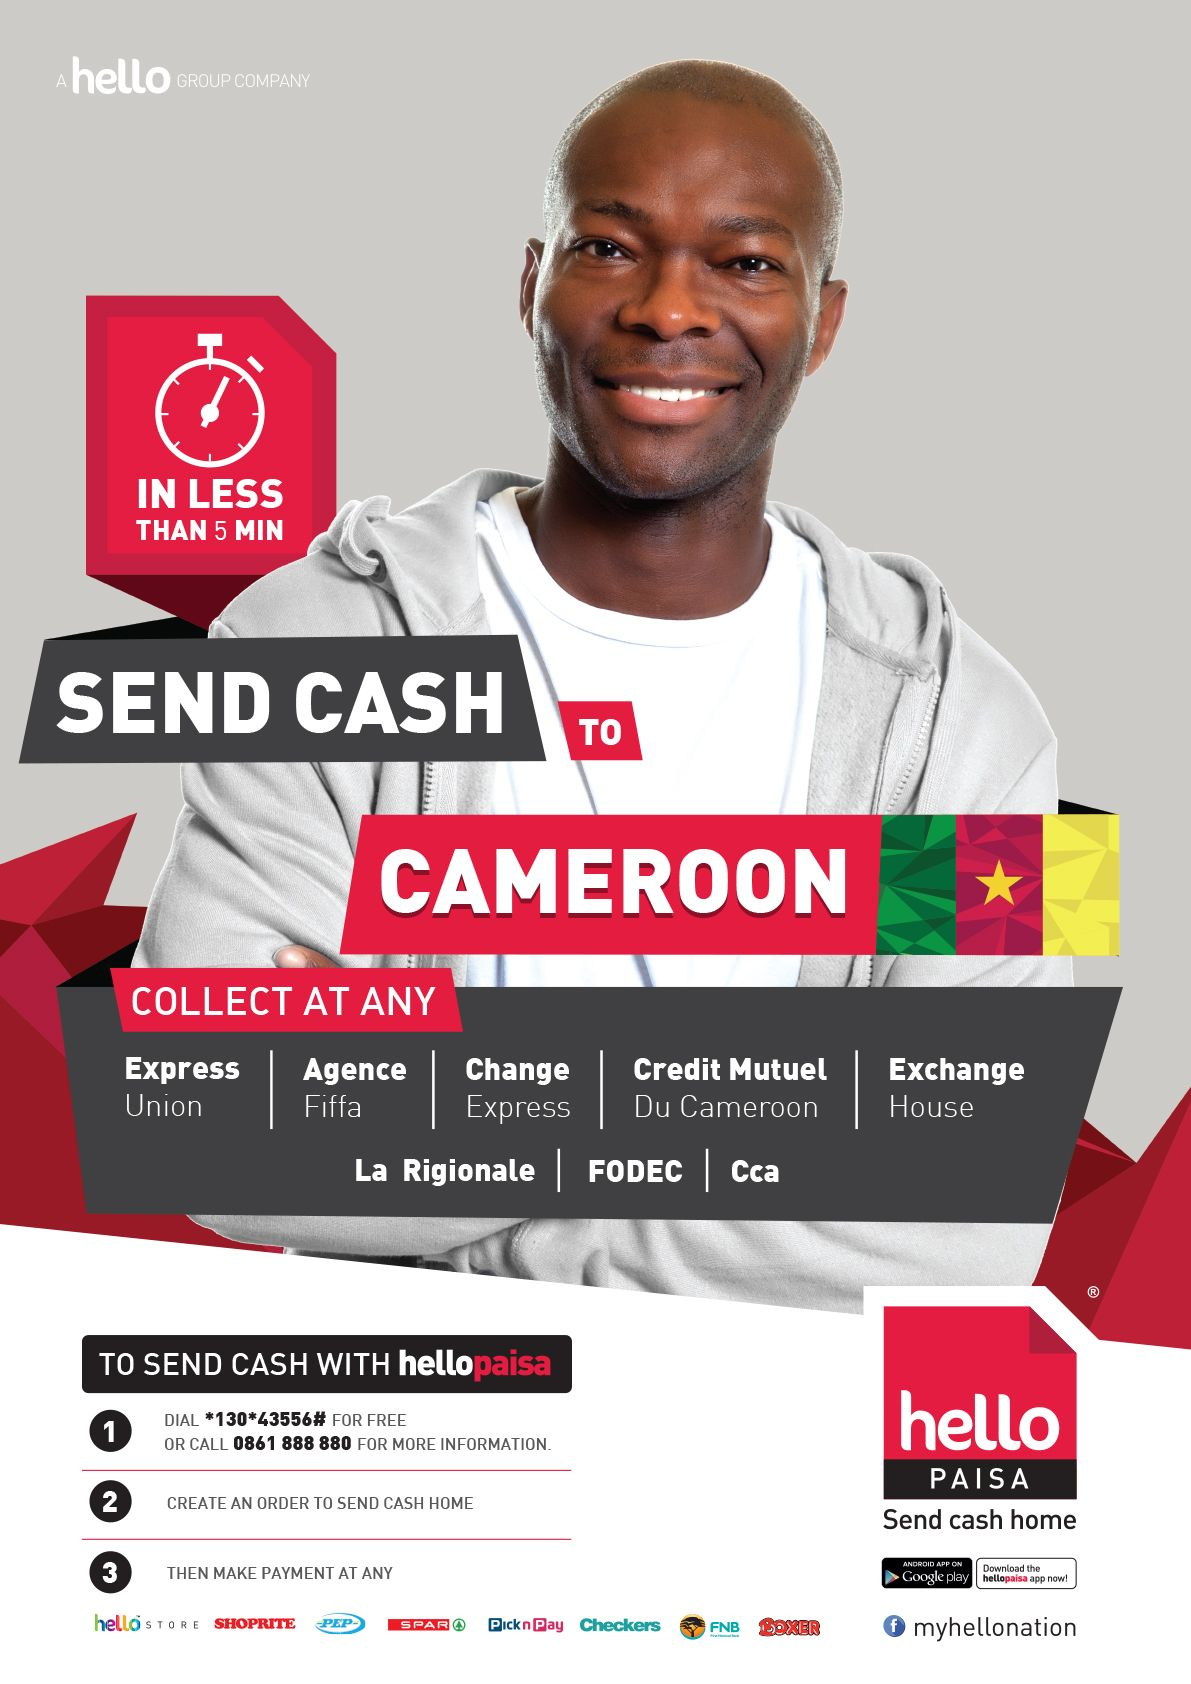 Send Money To Cameroon With Hello Paisa Www Hellopaisa Co Za Design By Group Marketing